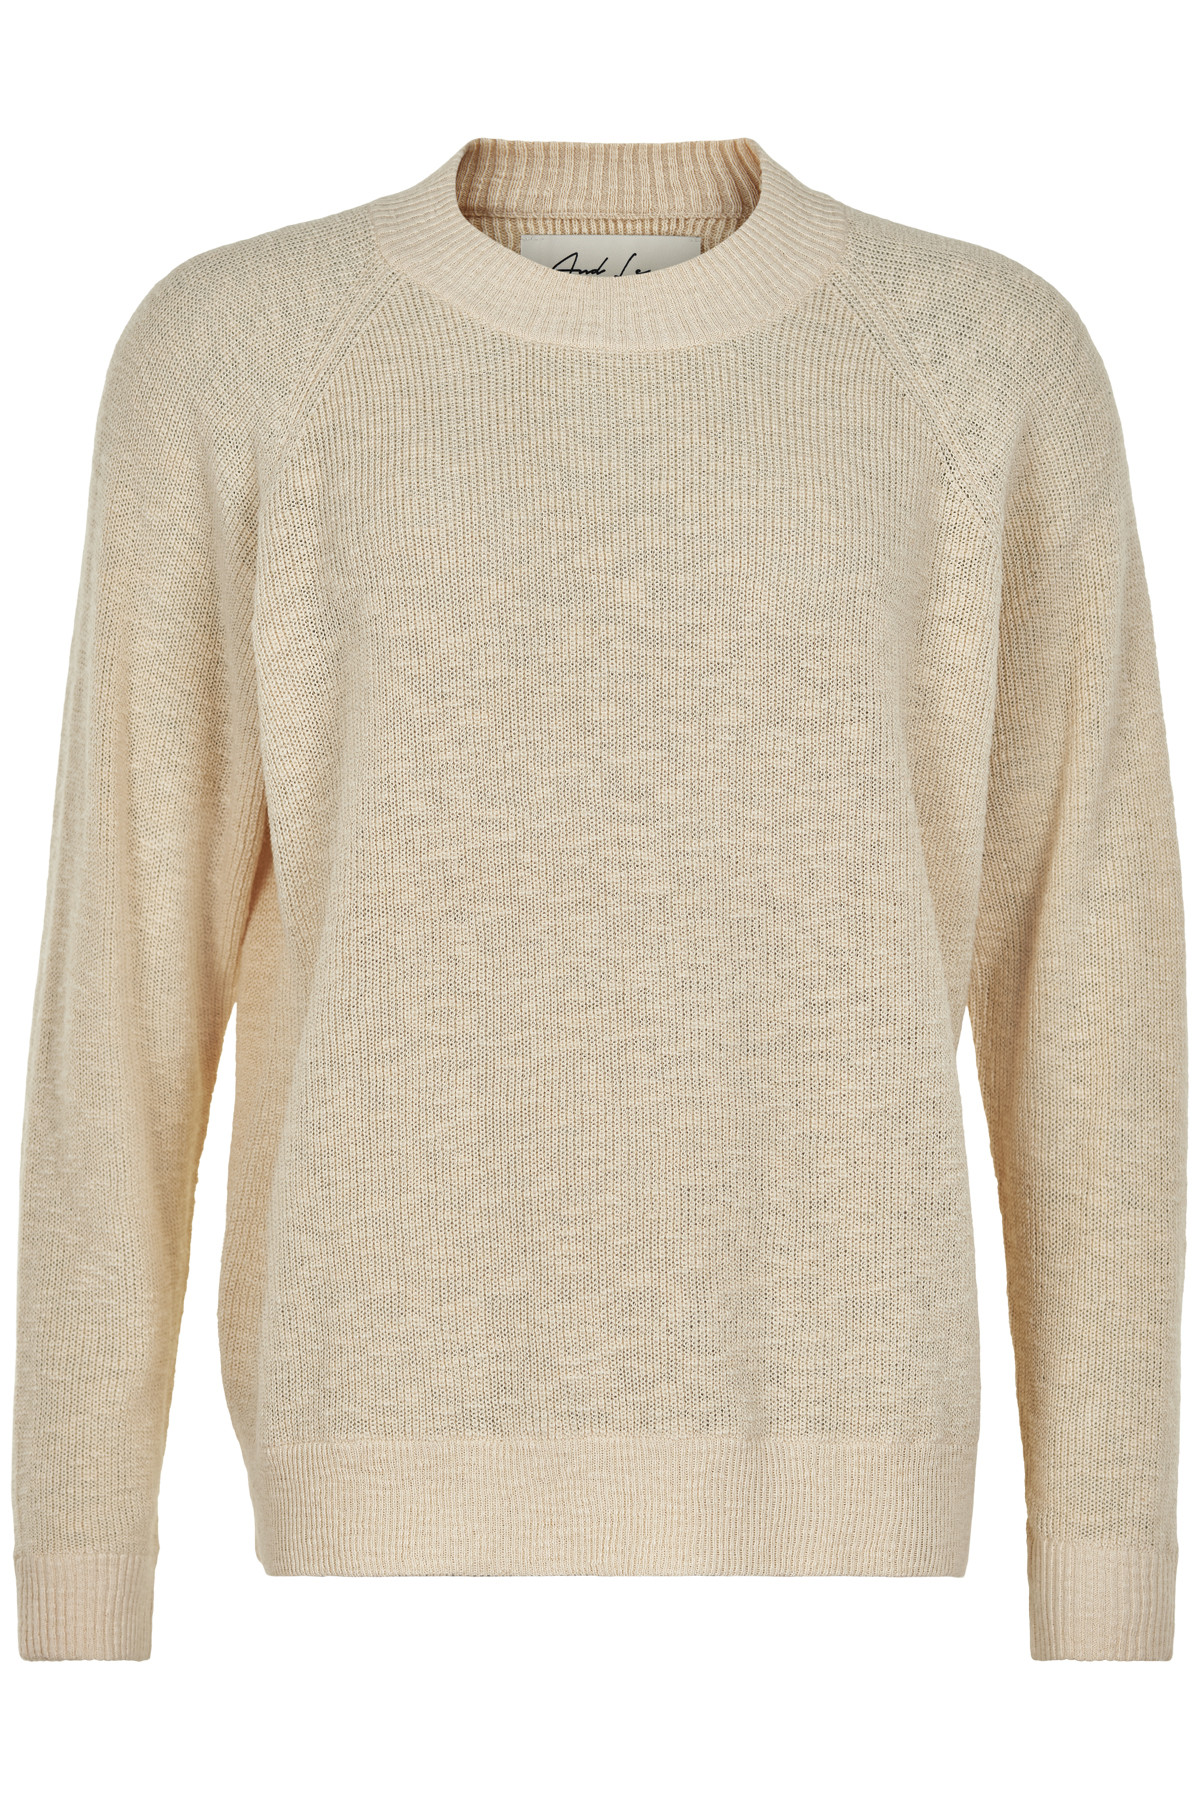 Image of   AND LESS ALBAMBINA PULLOVER 5220201 9504 (Birch, L)